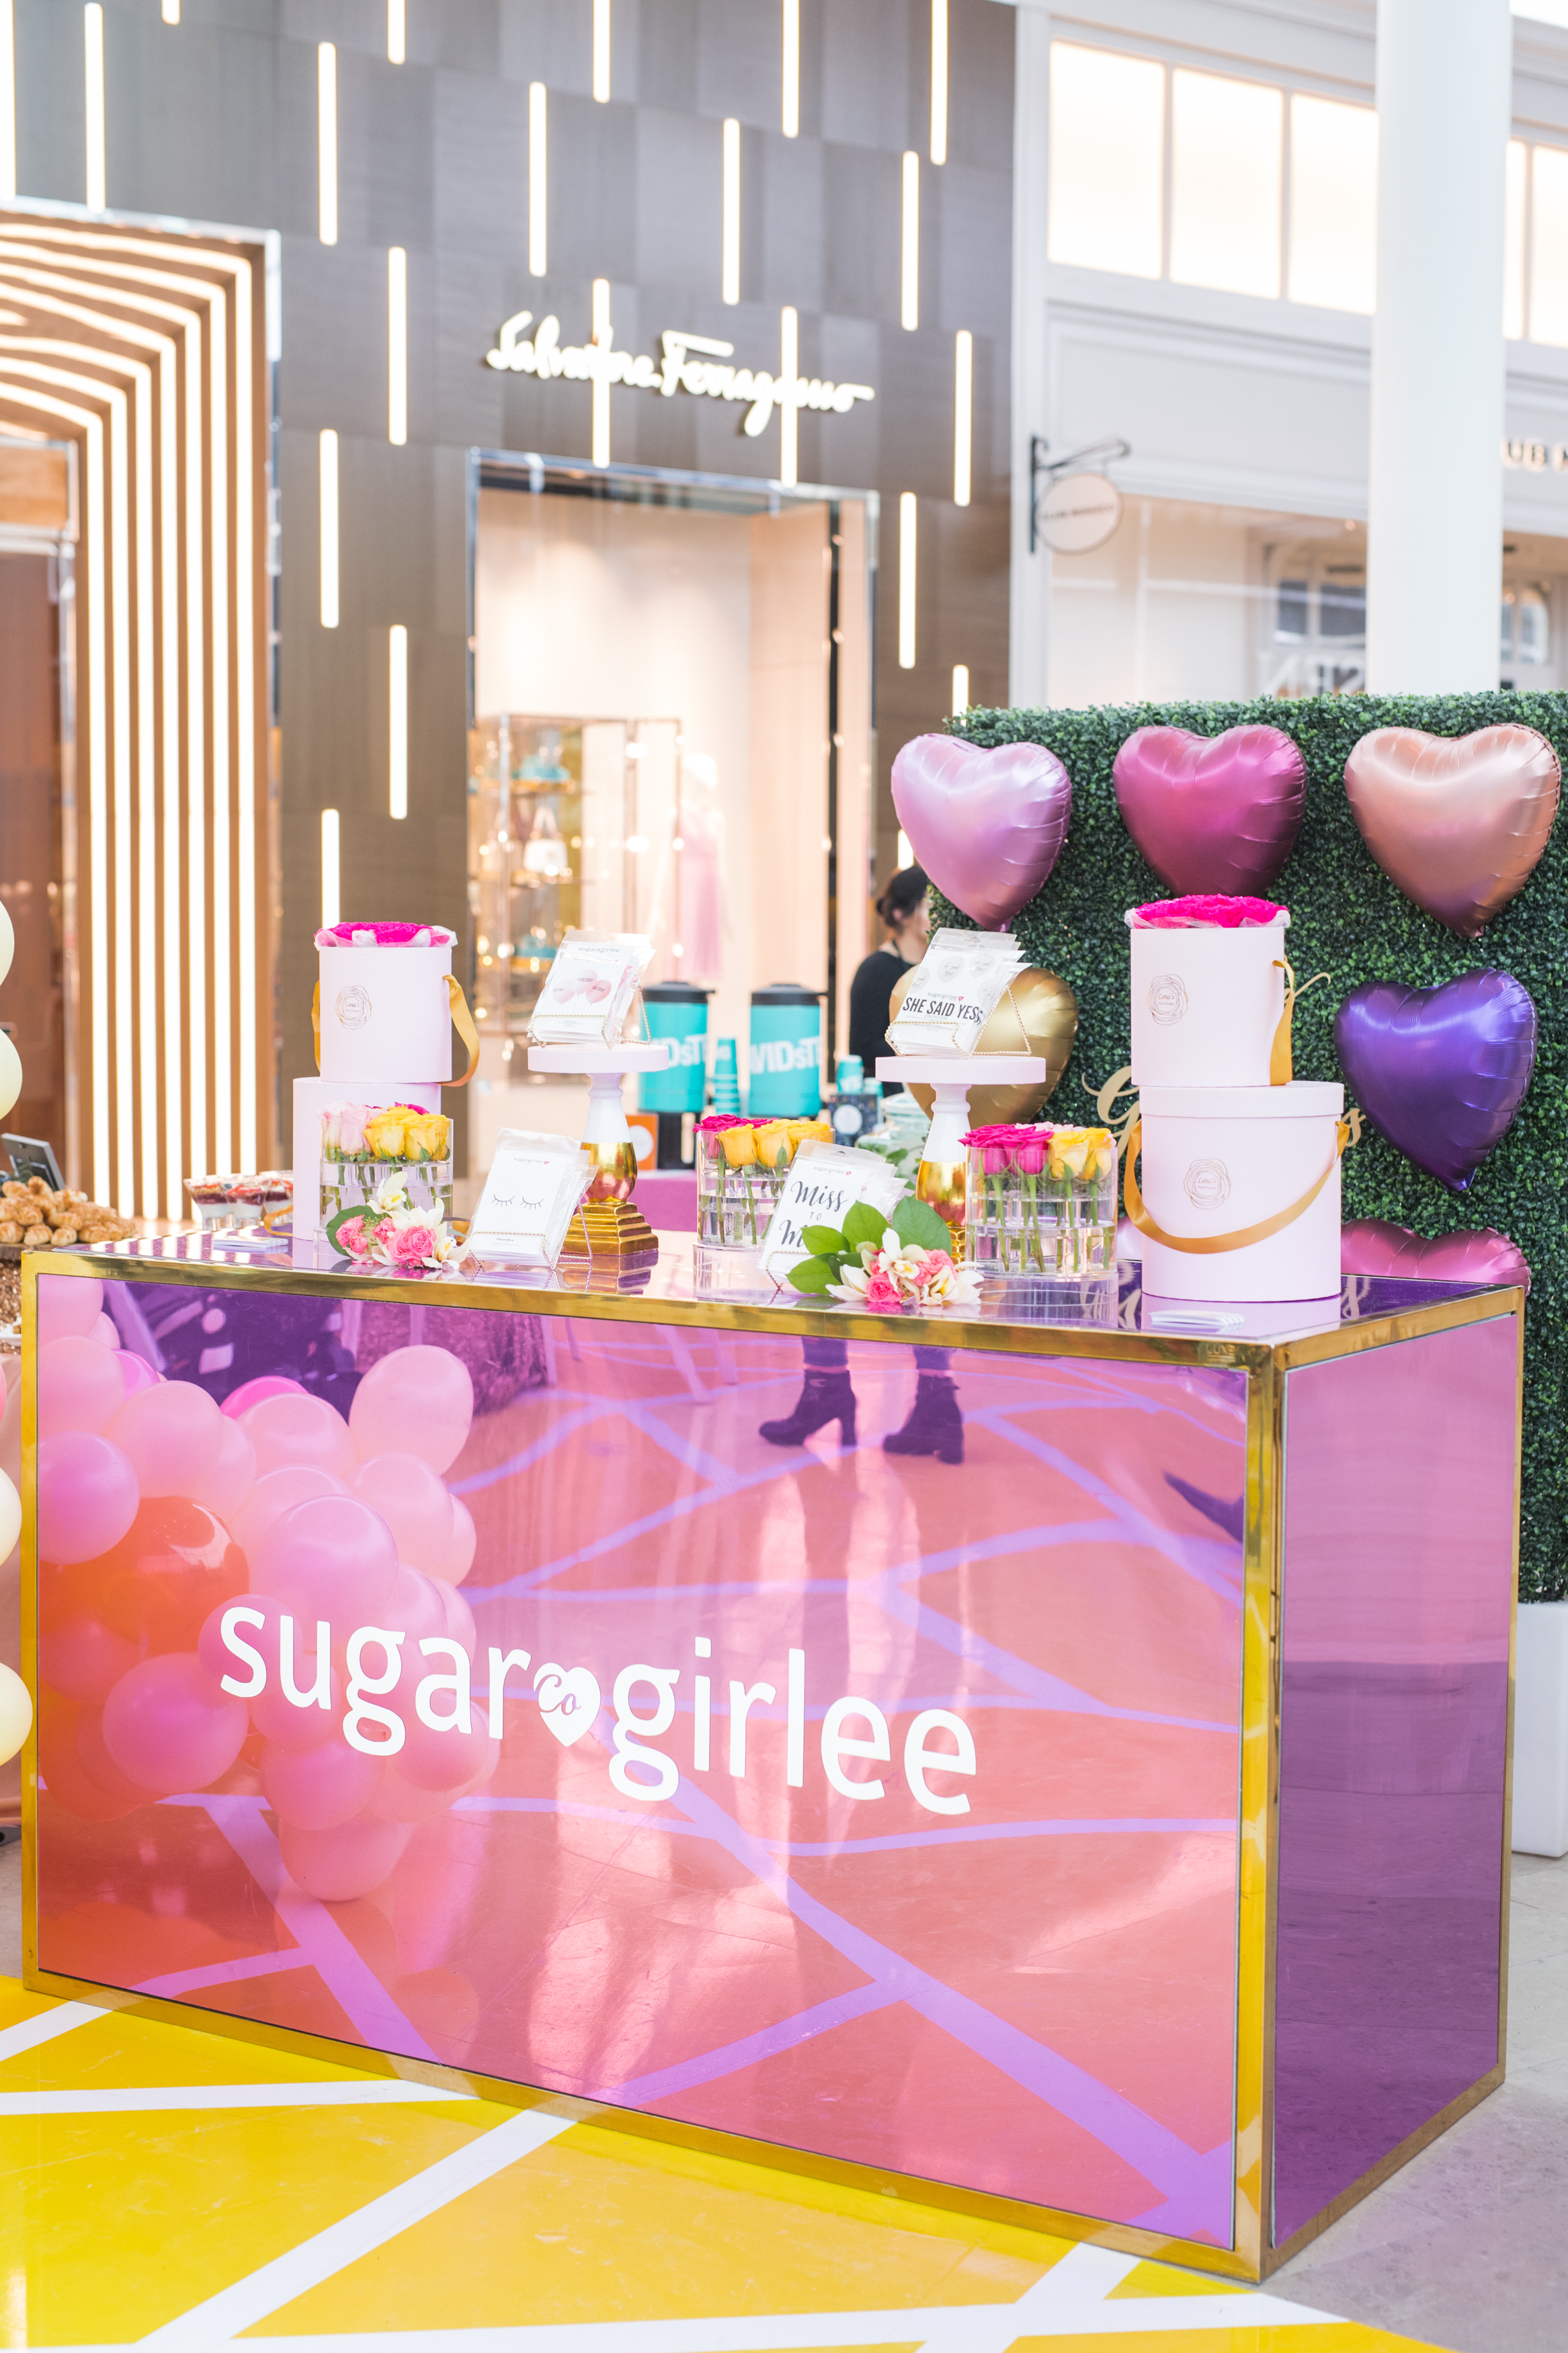 August In Bloom - Sugar Girlee set up - #SQ1Bridal (Square One Shopping Centre)